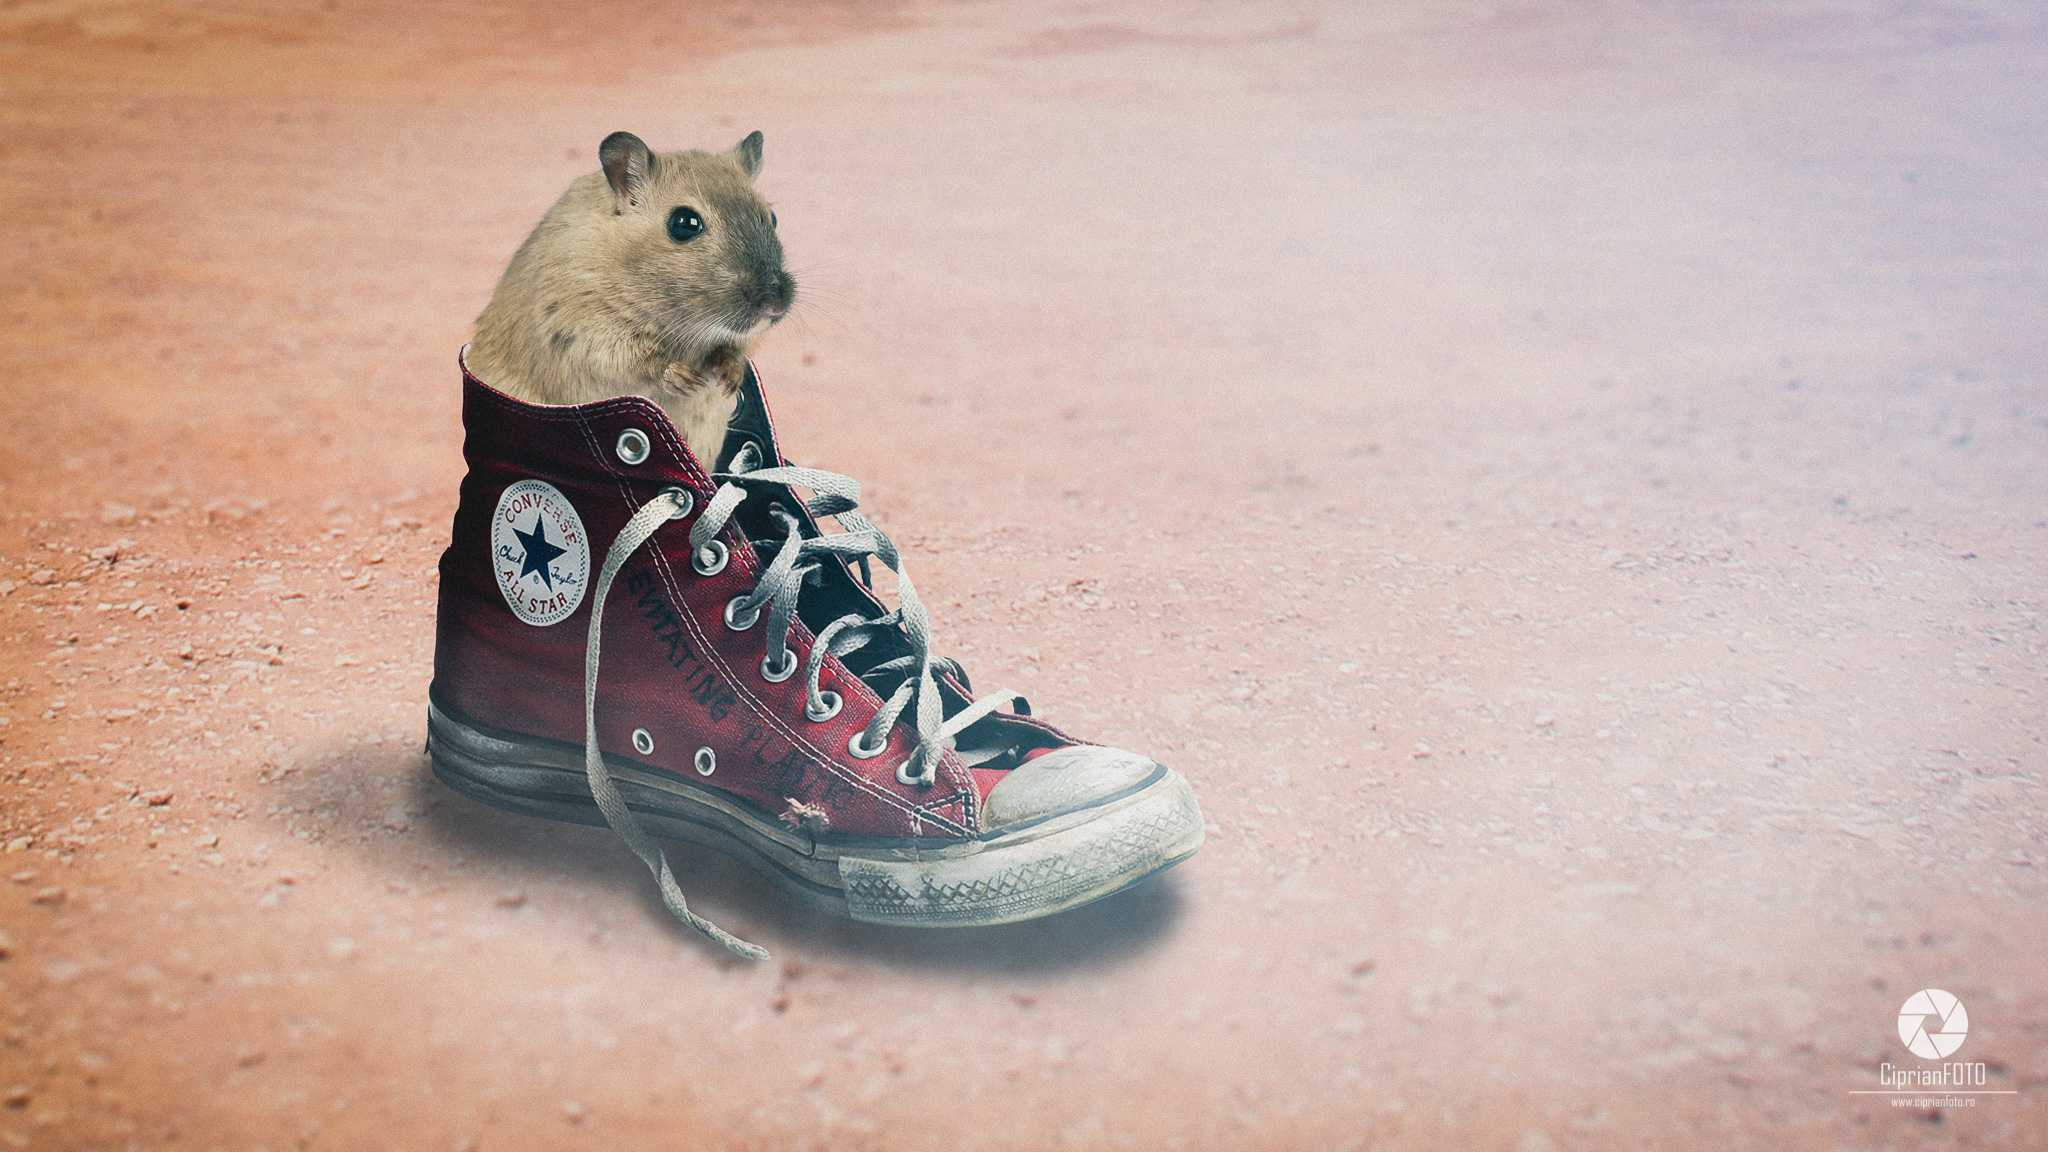 Hamster In The Old Converse Shoe, Photoshop Manipulation Tutorial, CiprianFOTO